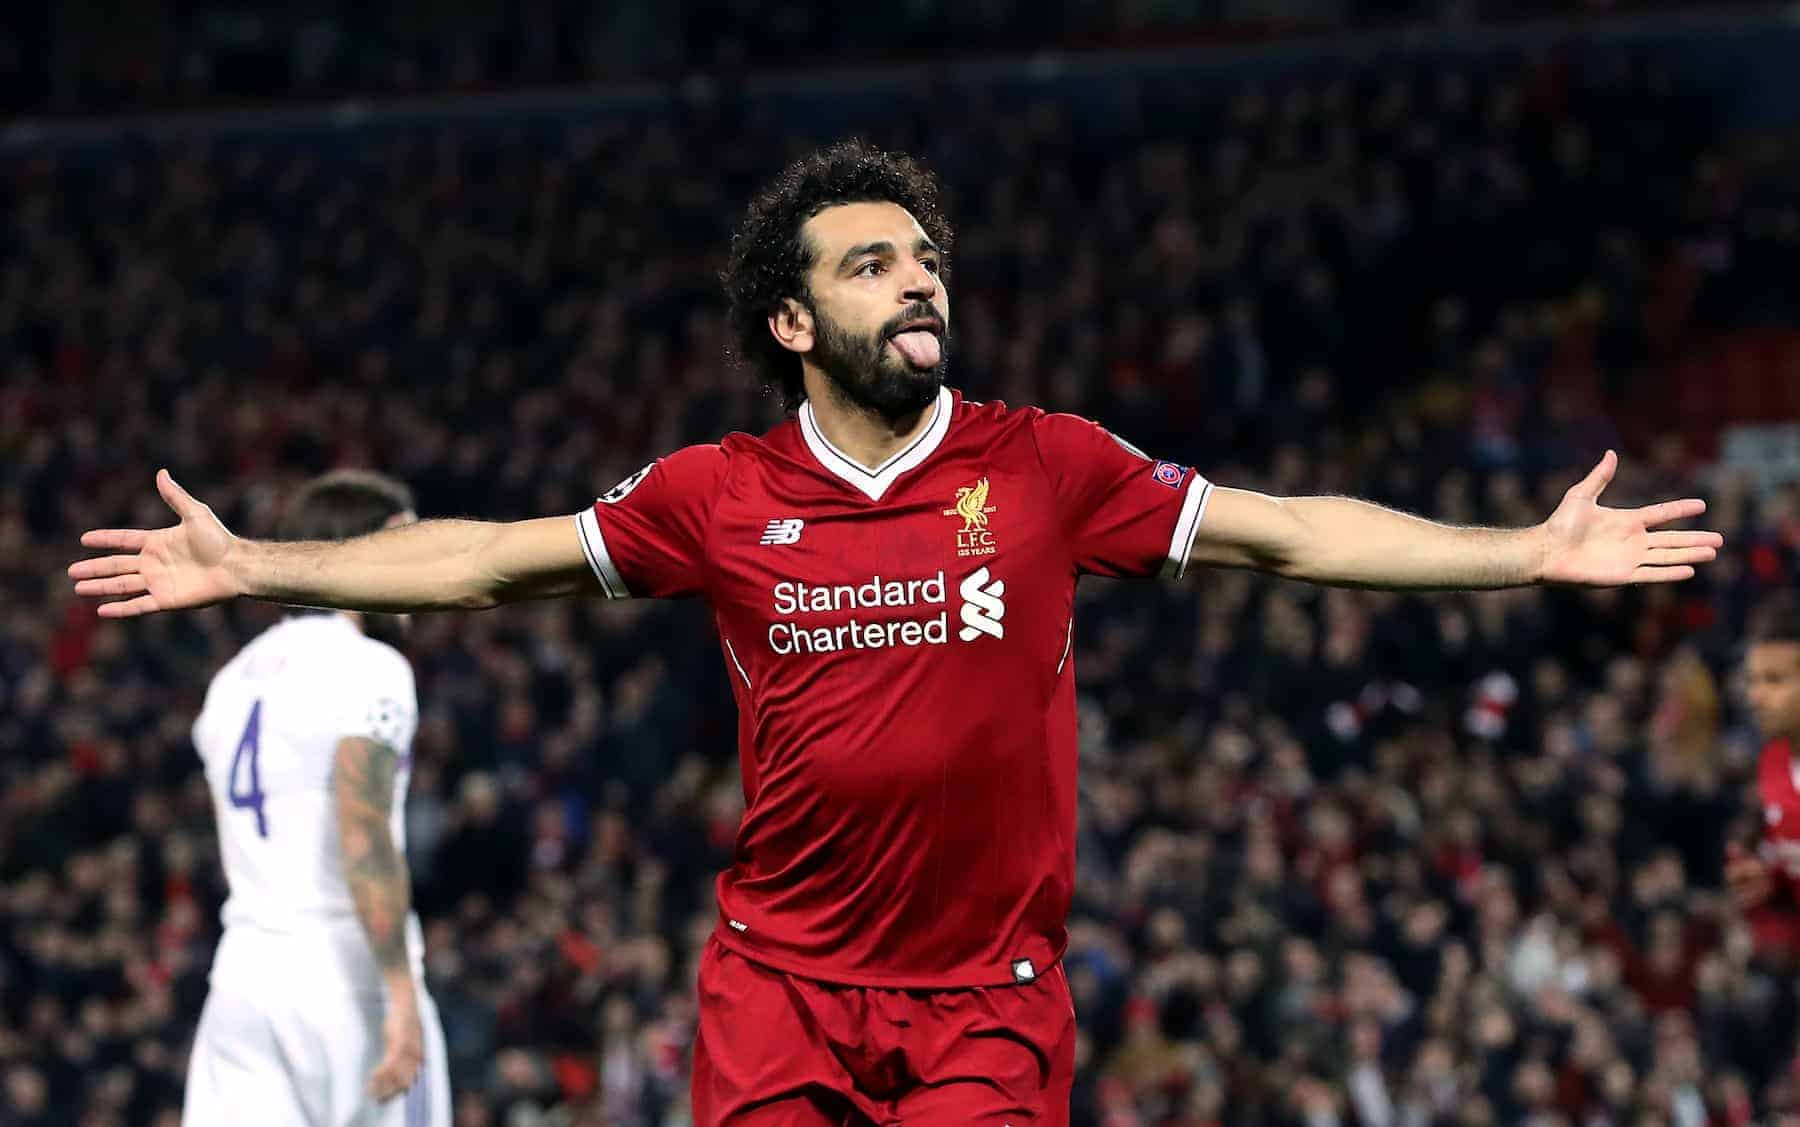 Liverpool's Mohamed Salah celebrates scoring his side's first goal of the game